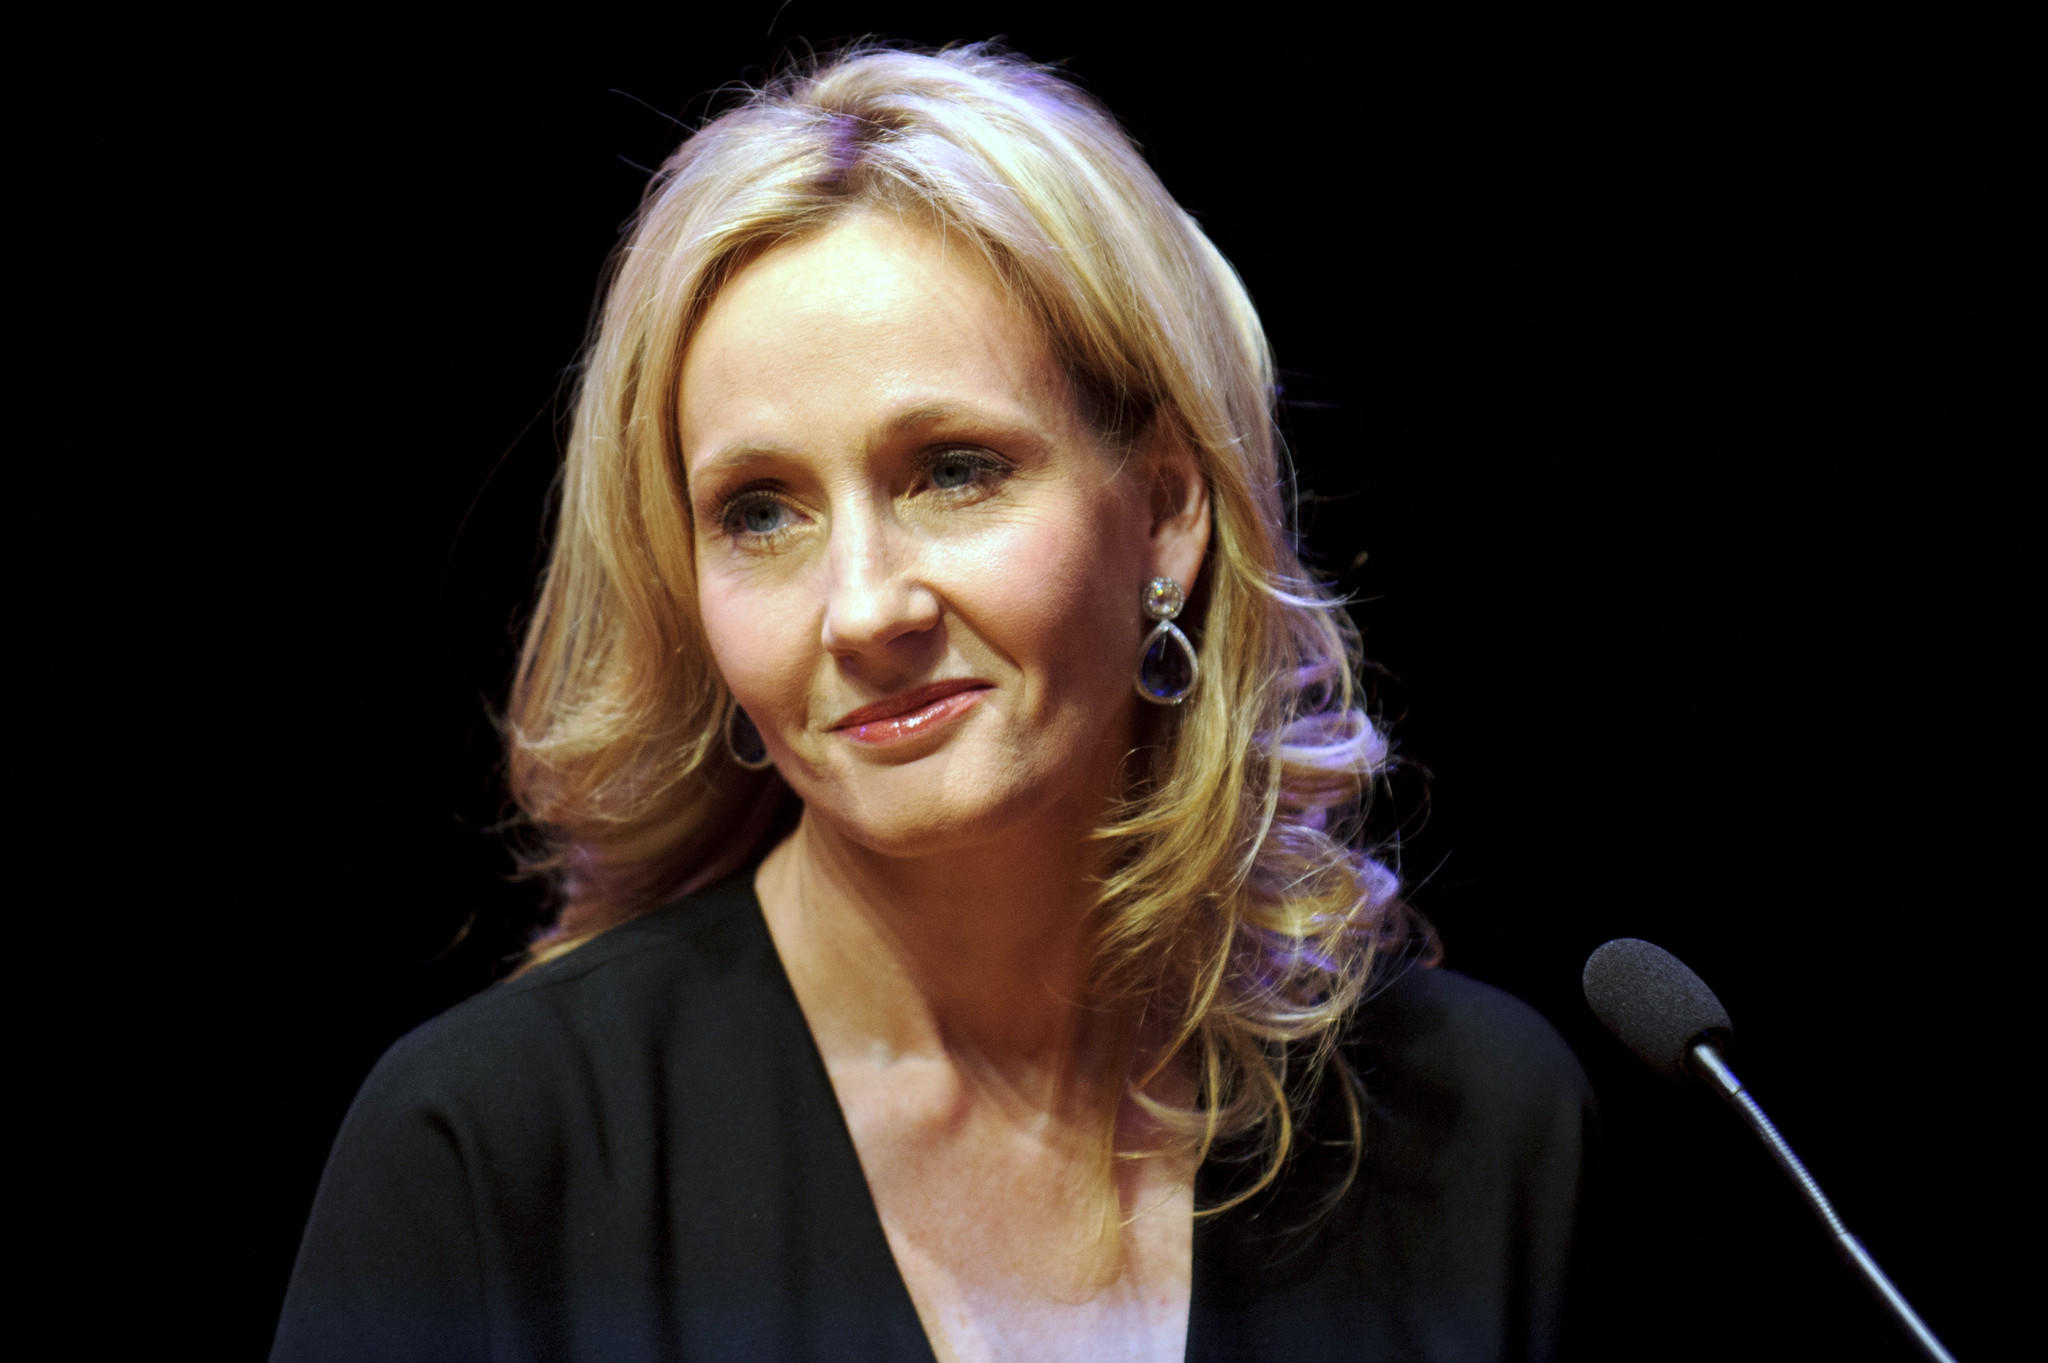 Author J.K. Rowling attends photocall ahead of her reading from 'The Casual Vacancy' at the Queen Elizabeth Hall in London, England.